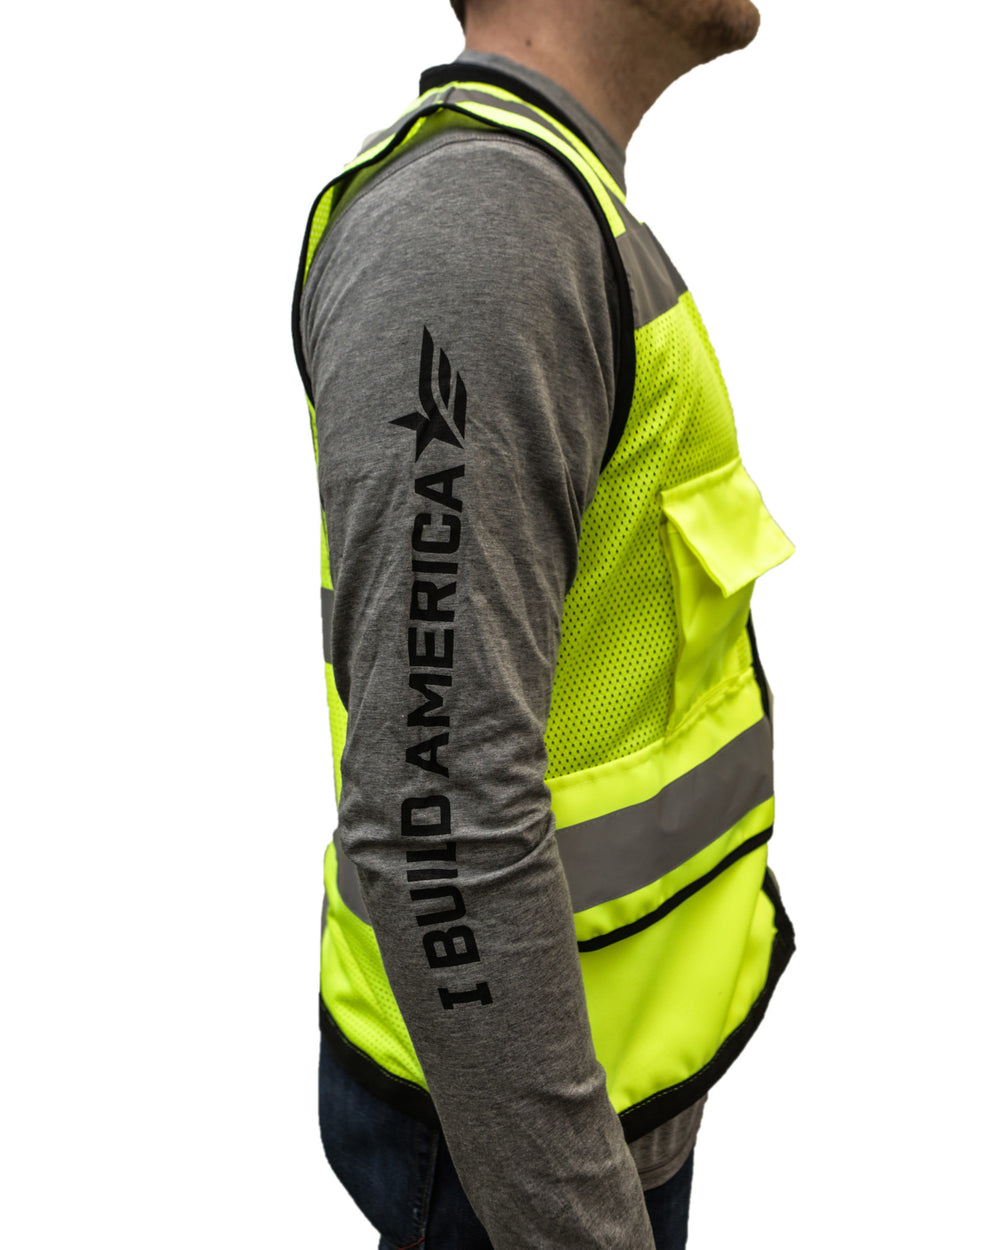 I Build America ANSI Certified Class 2 Heavy Duty Safety Vest